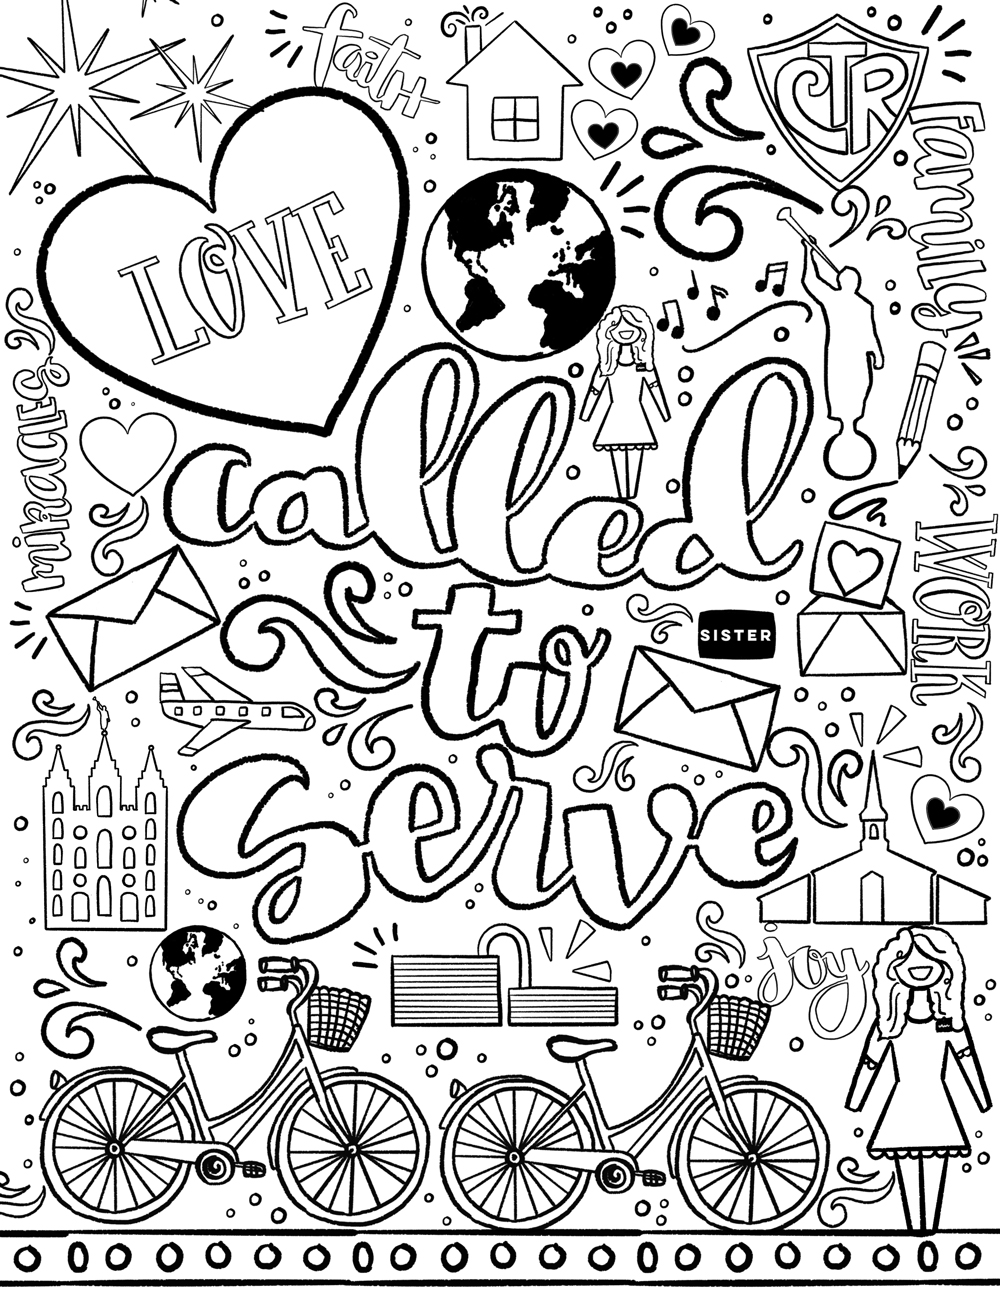 missions coloring pages - photo#18